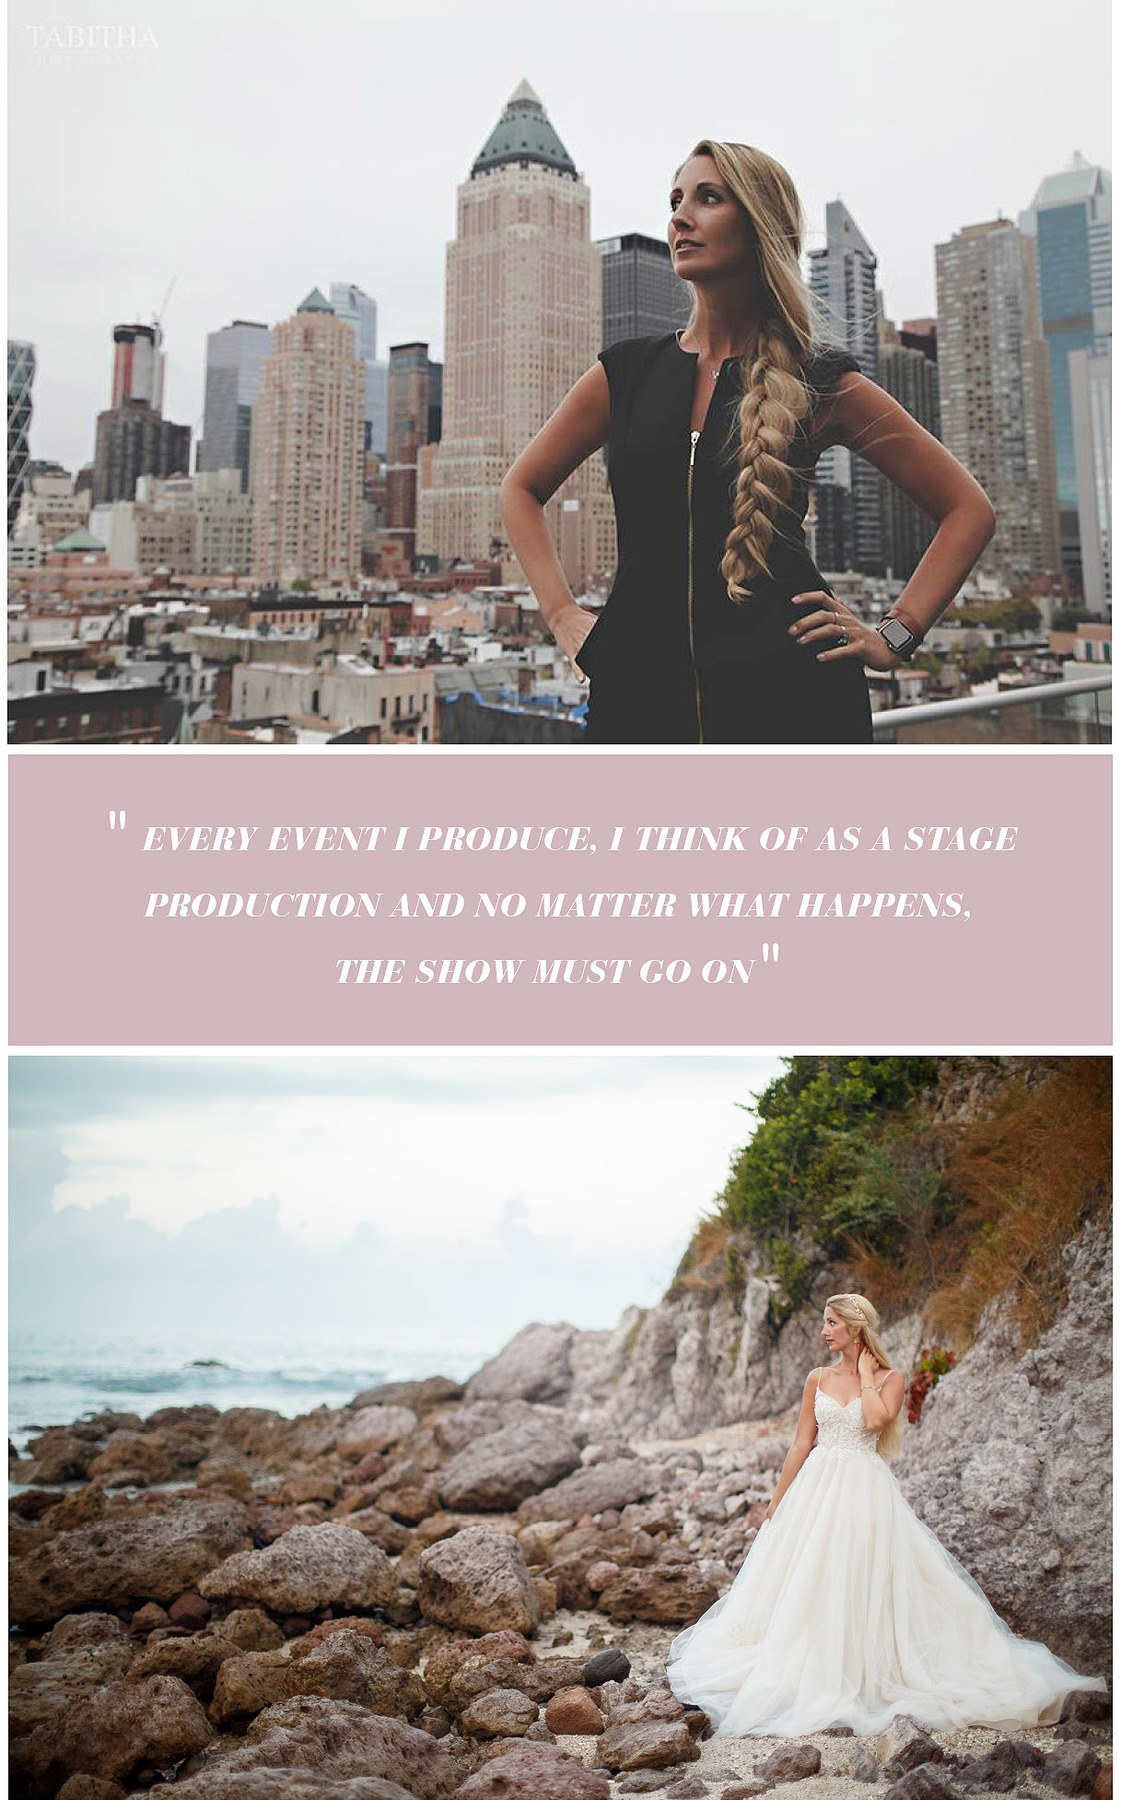 Wedding Inspiration Archives - Page 3 of 5 - Nüage Designs